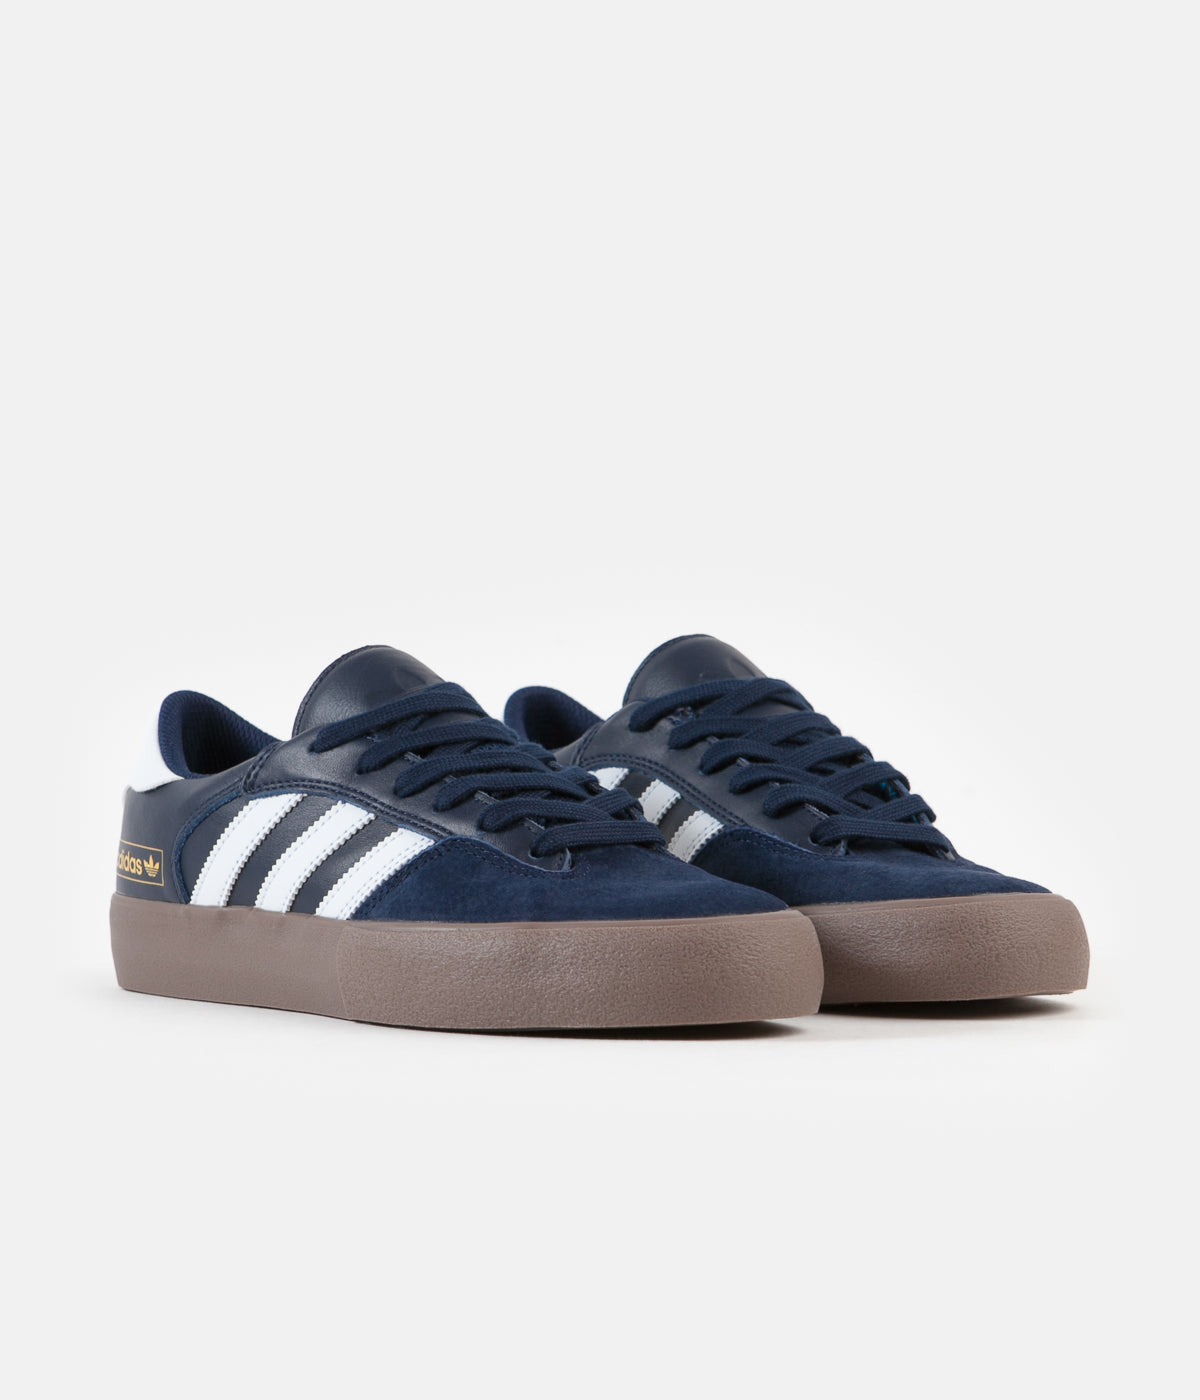 Adidas Matchbreak Super Shoes - yeezy pillow shoes for sale on ...